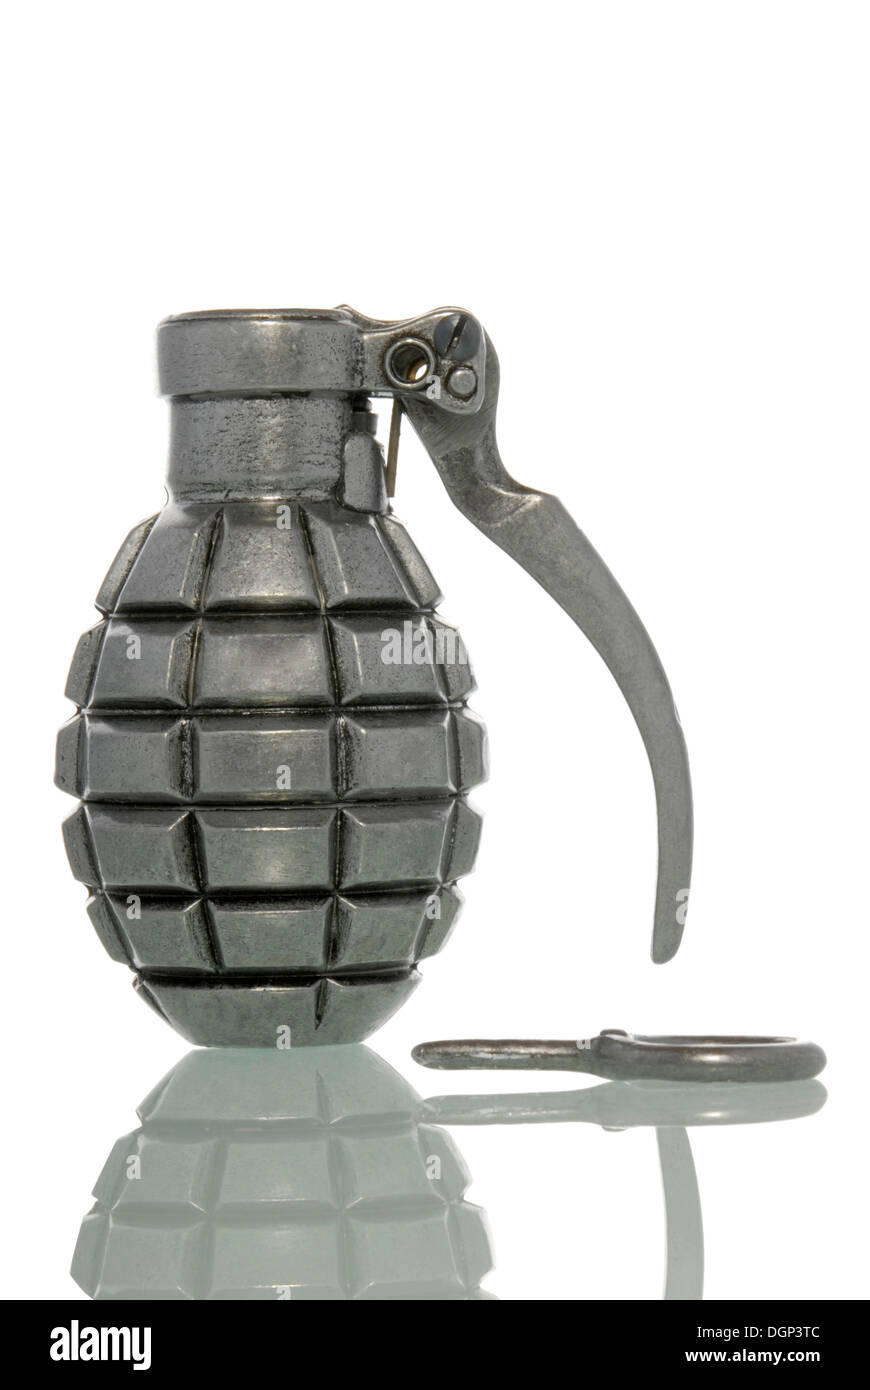 Pin removed from a hand grenade, activated - Stock Image